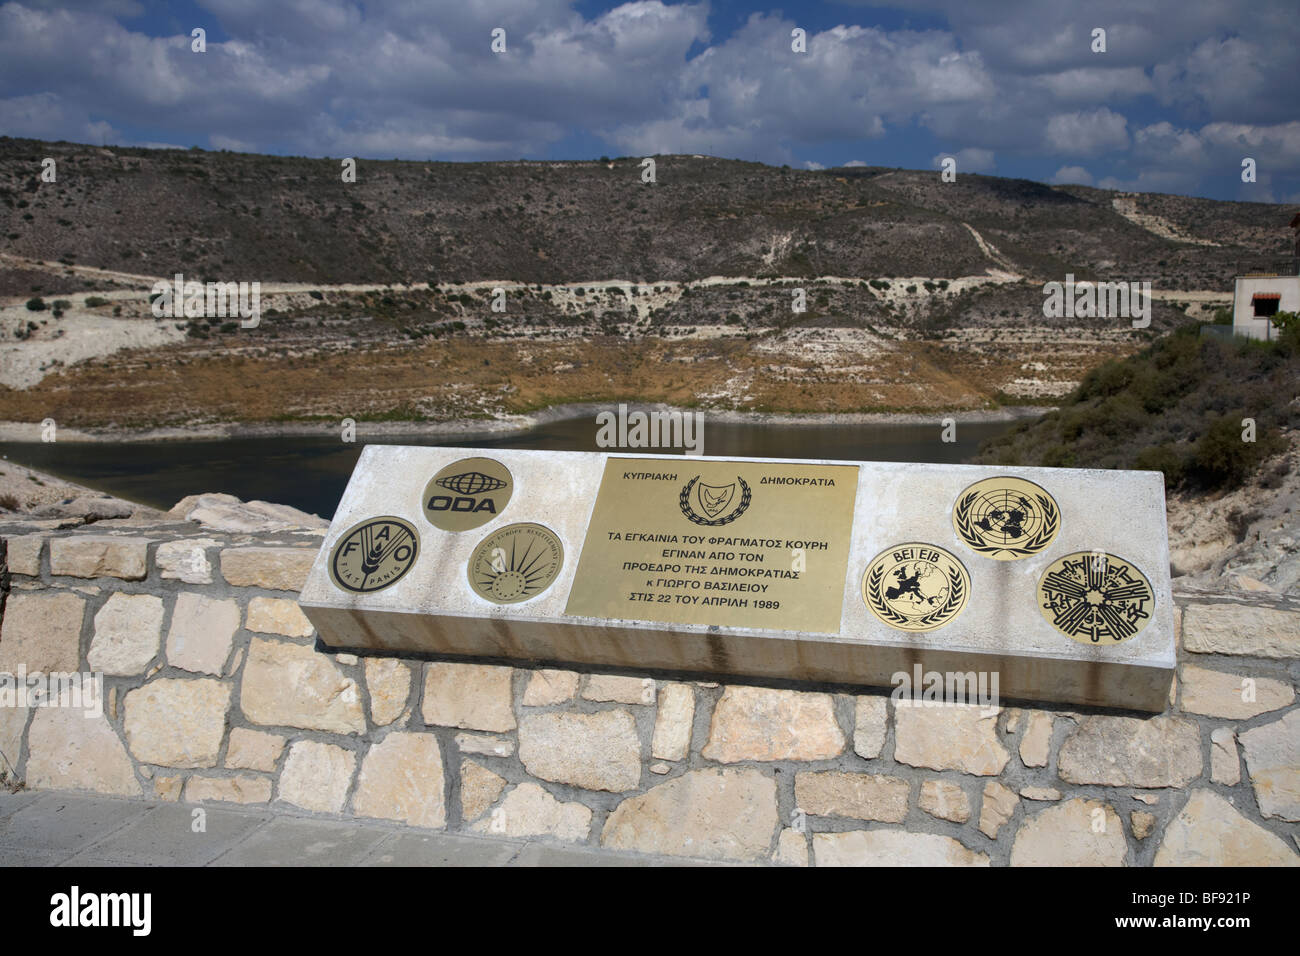 plaque at the Kouris Dam and reservoir in the republic of Cyprus europe - Stock Image